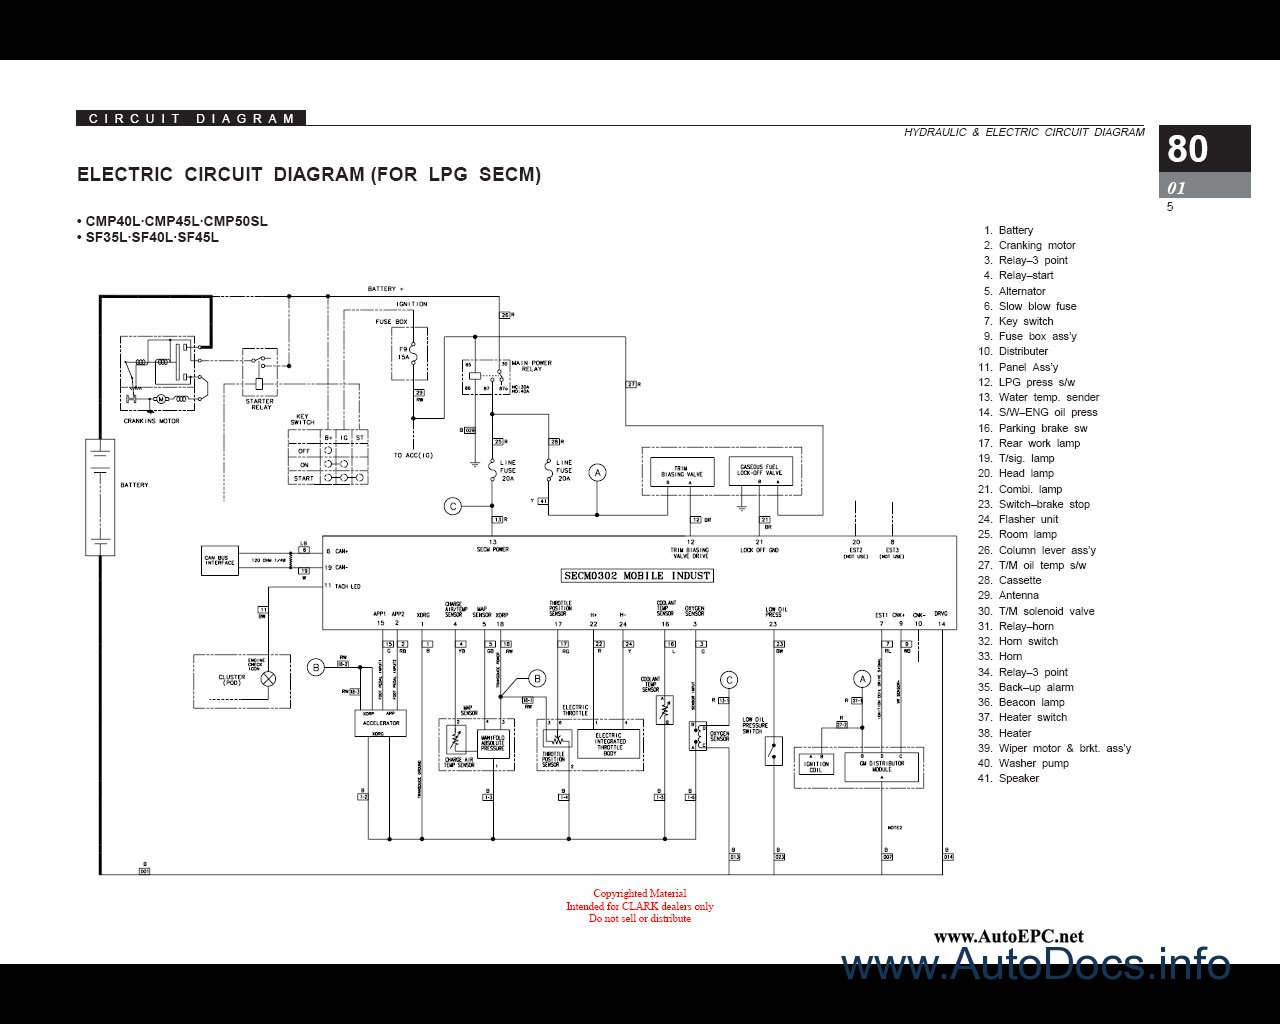 hight resolution of clark forklift truck parts pro 2010 parts catalog repair fuse box location on 2003 350z fuse